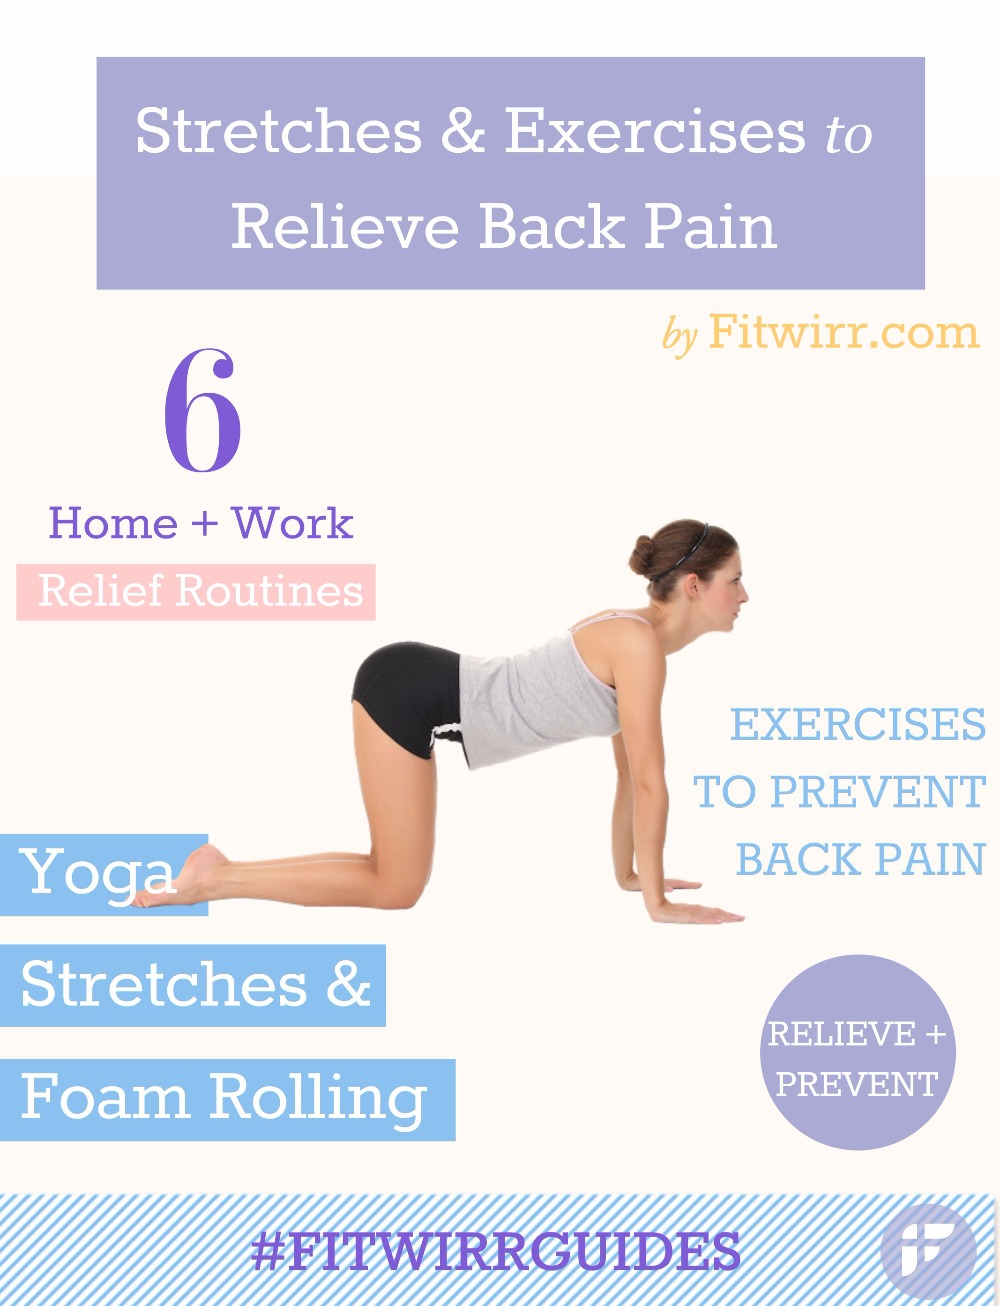 Stretches and Exercises to Relieve Back Pain